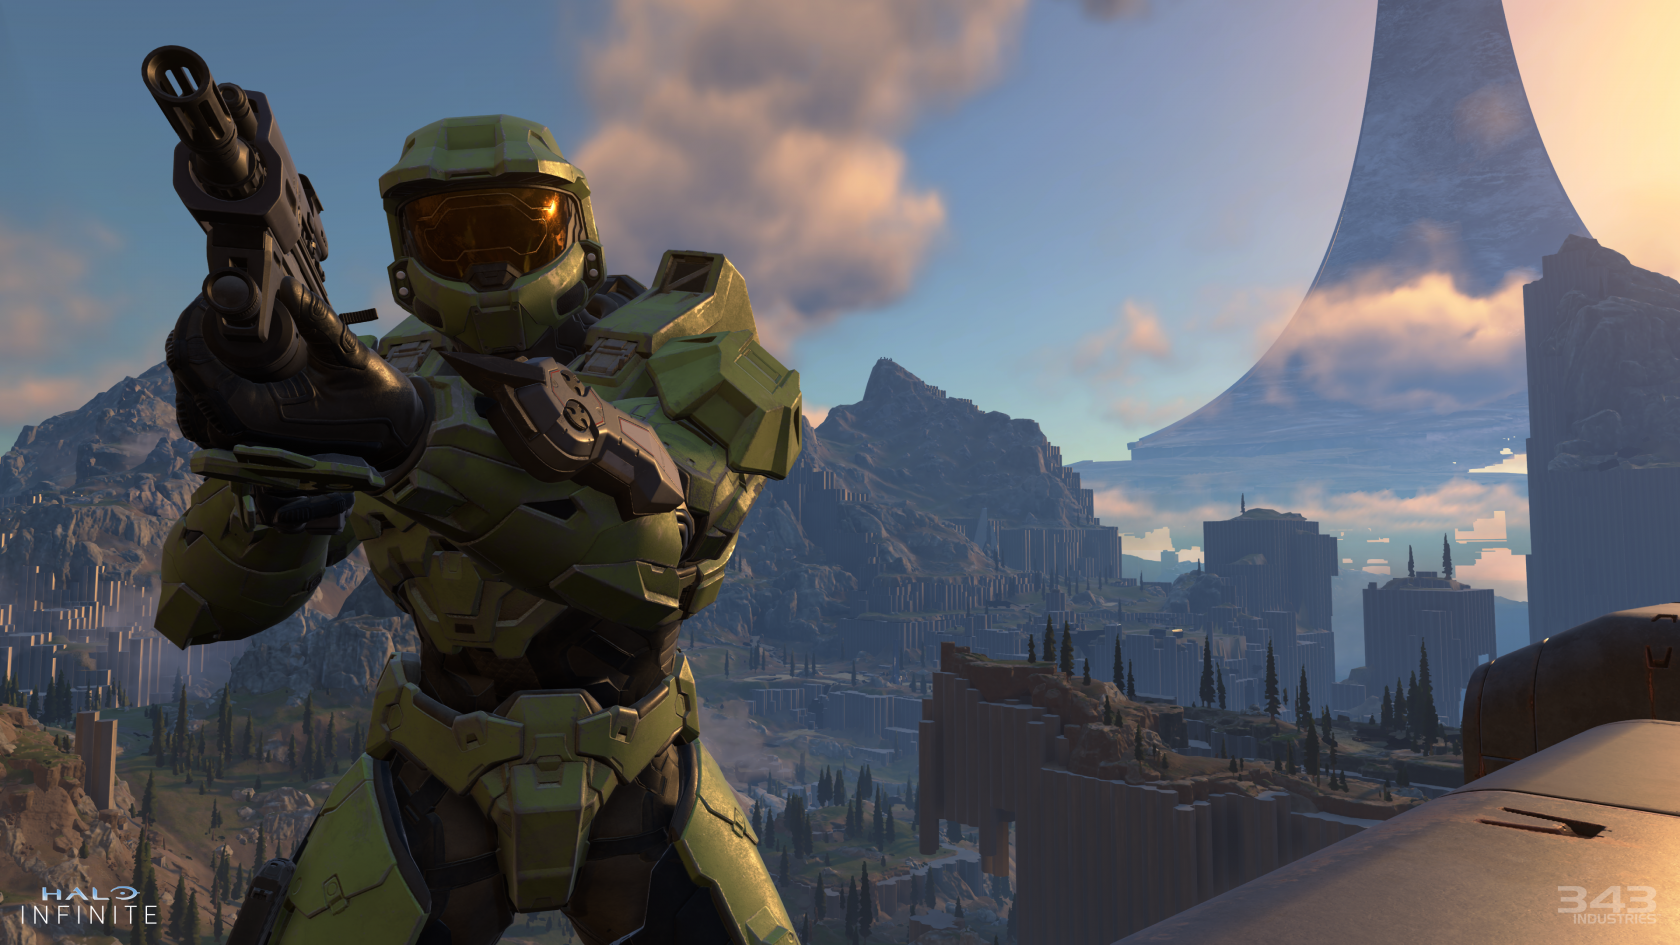 Halo Infinite has been delayed to 2021 1